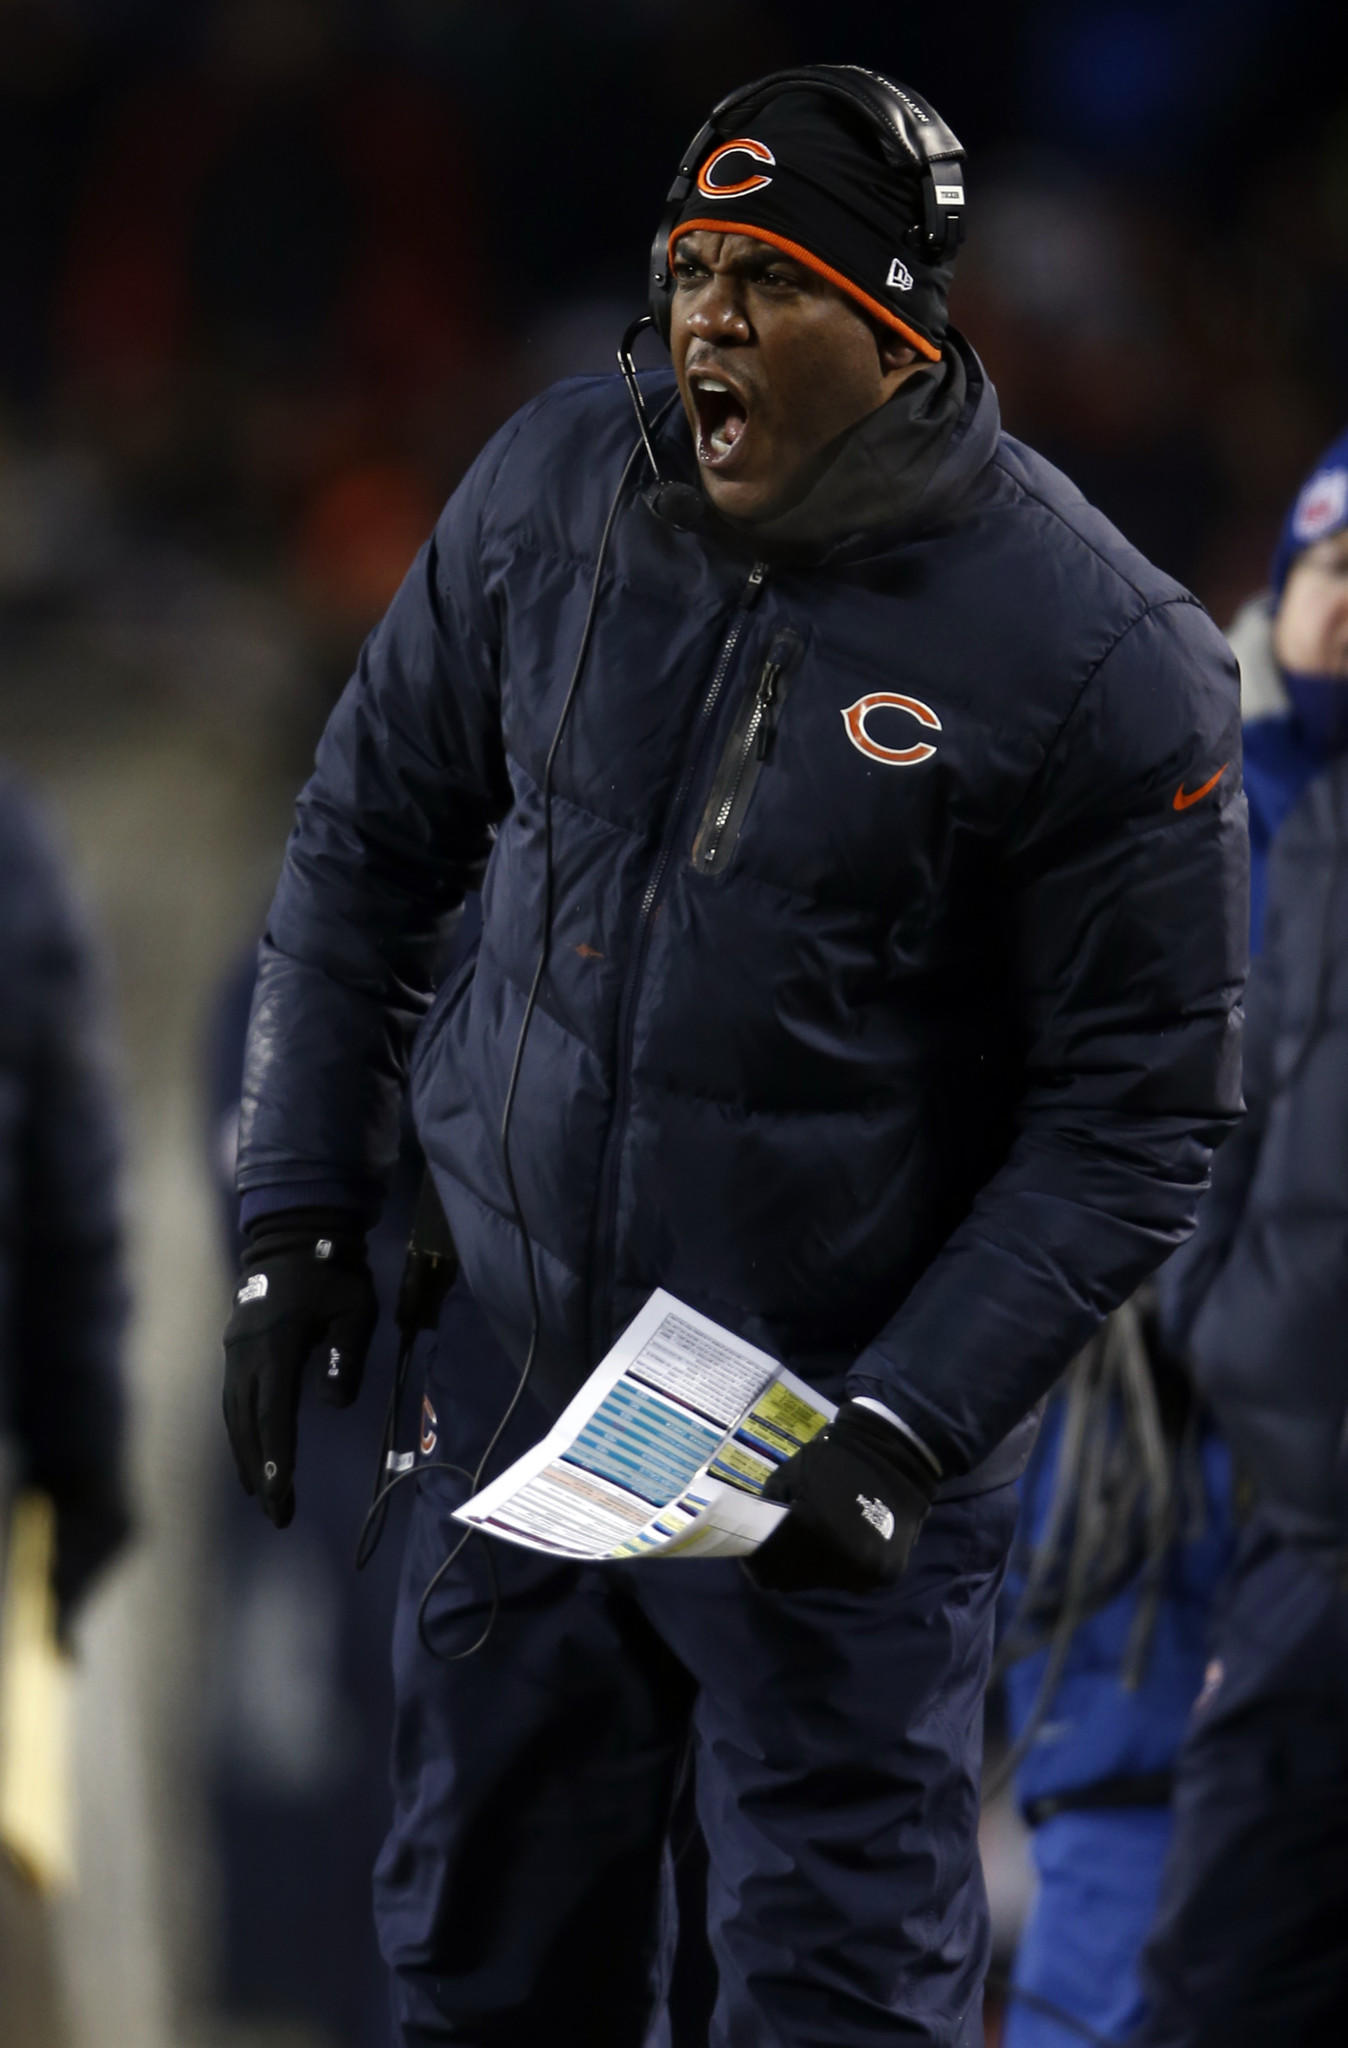 Chicago Bears' defensive coordinator Mel Tucker in 4th quarter of 45-28 win over Dallas Cowboys during NFL game at Soldier Field.